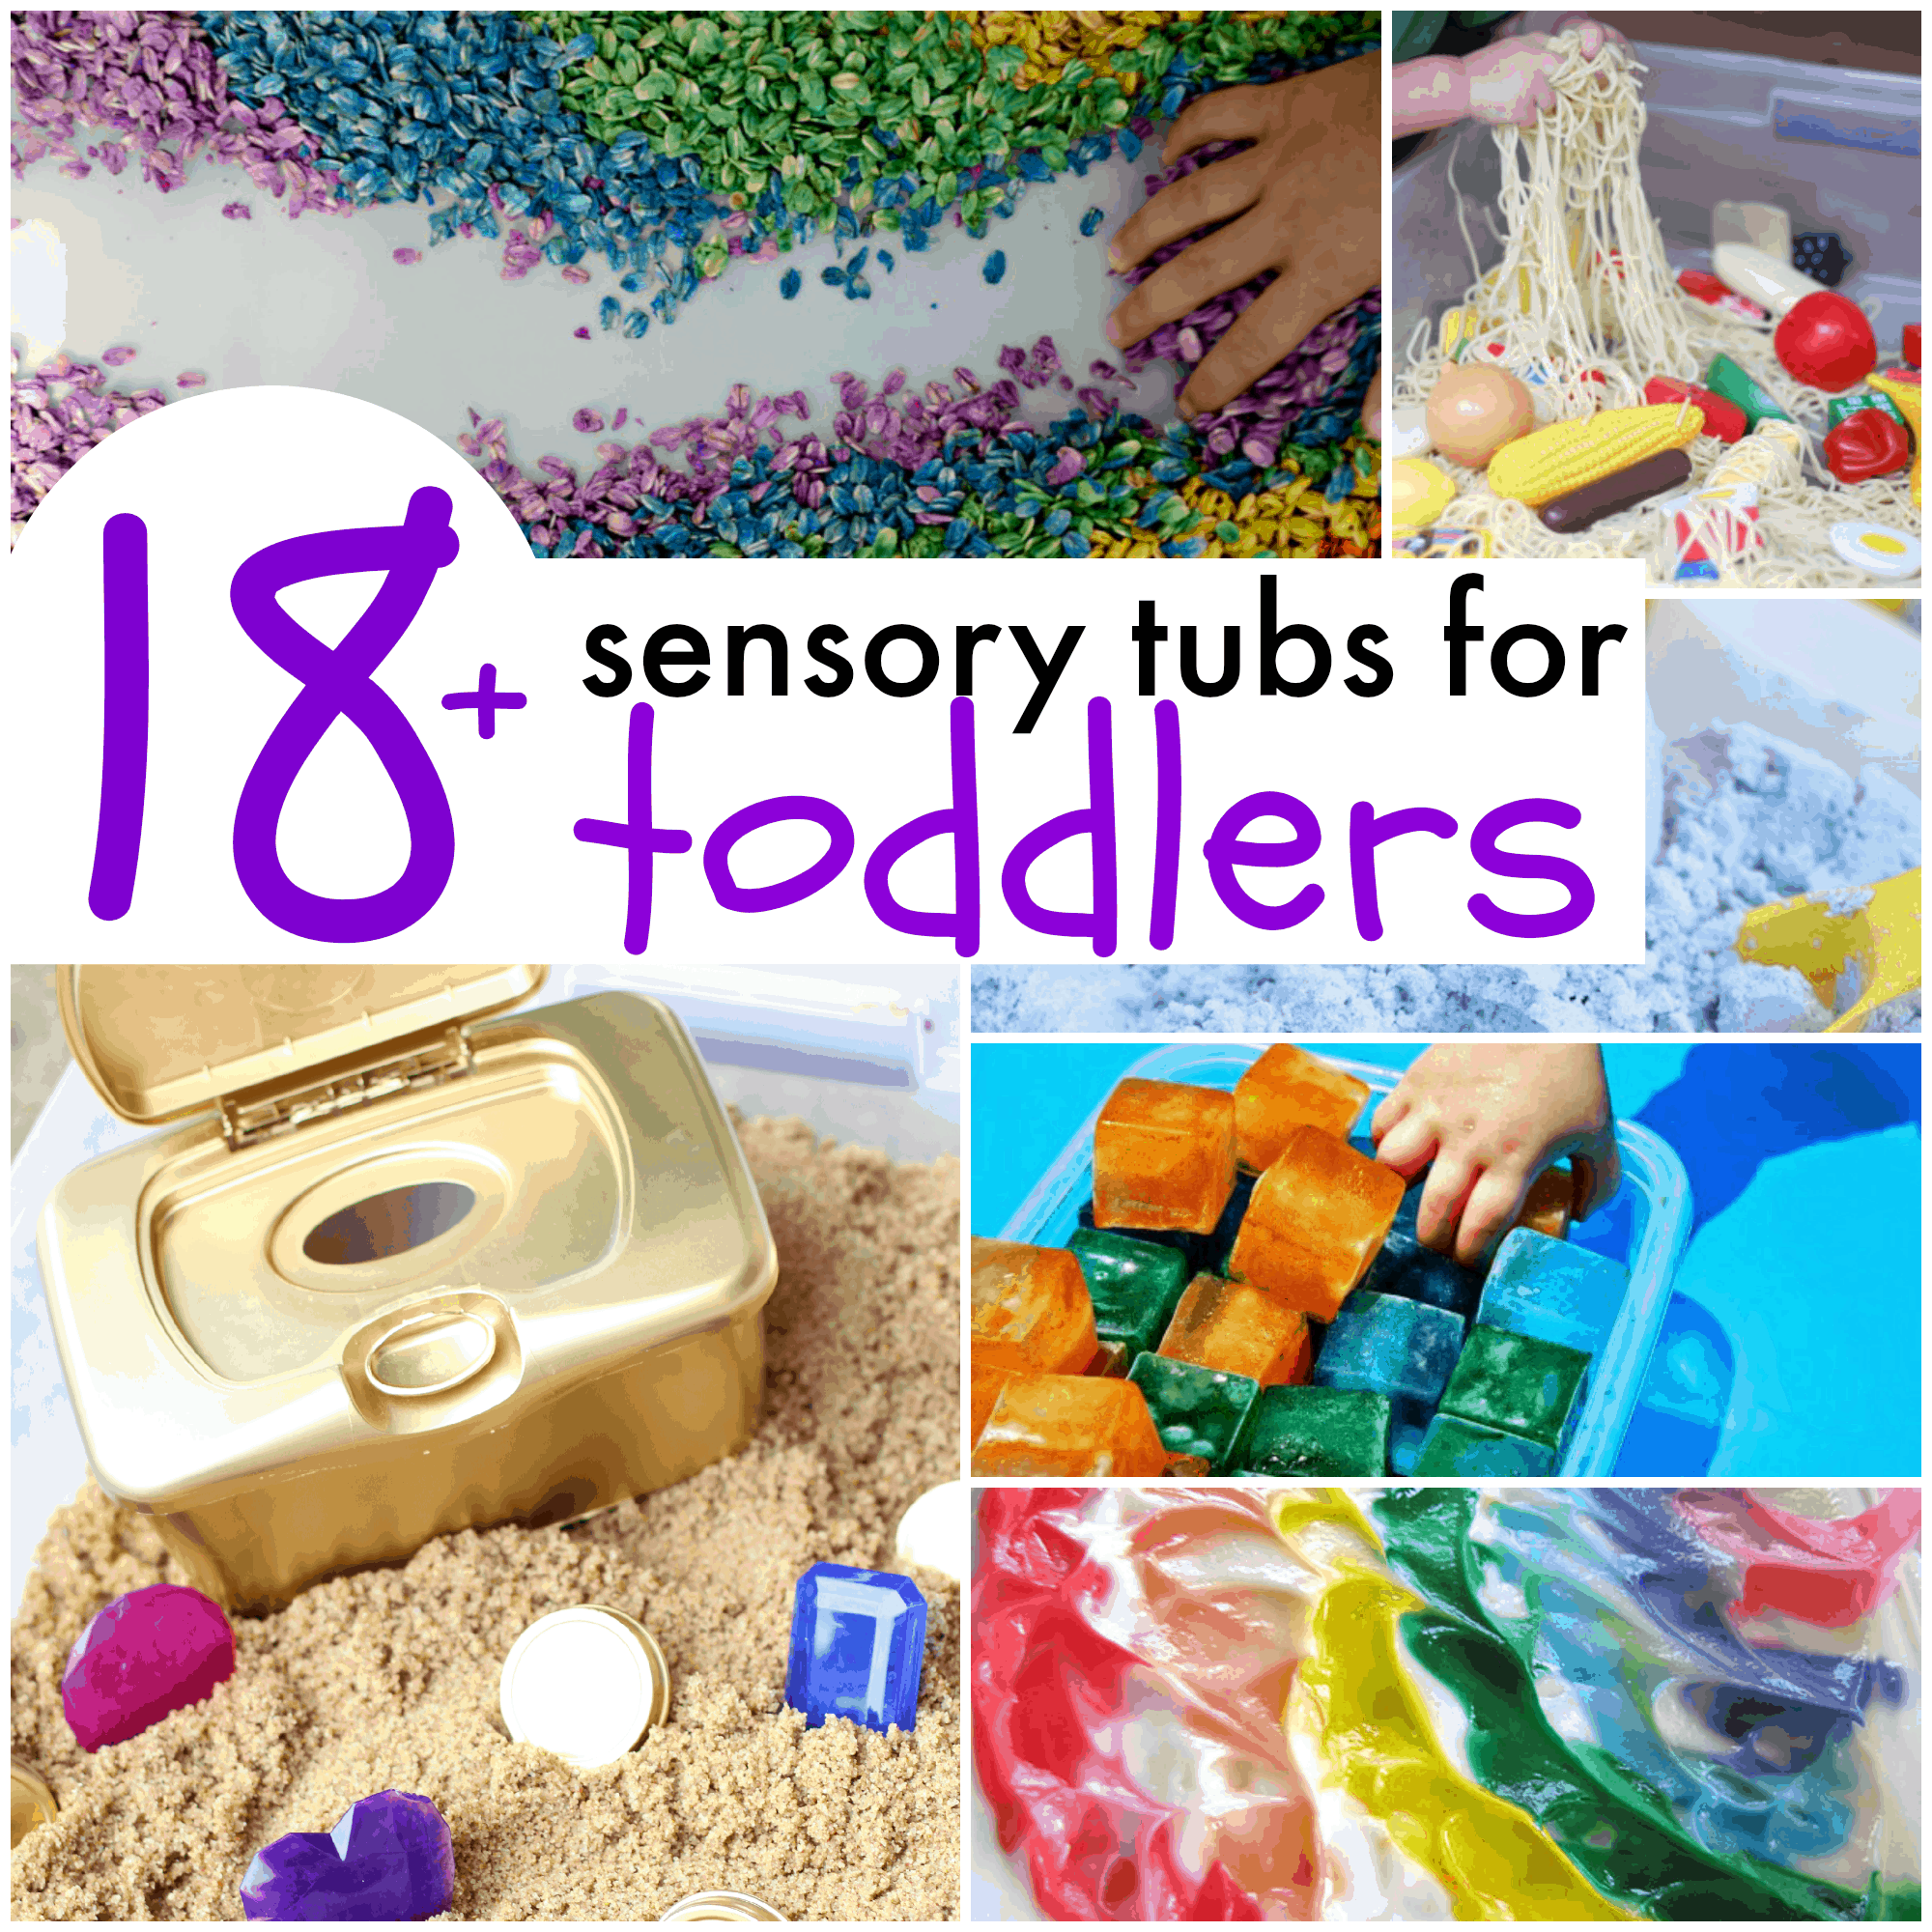 18 sensory tubs for toddlers - Pictures For Toddlers